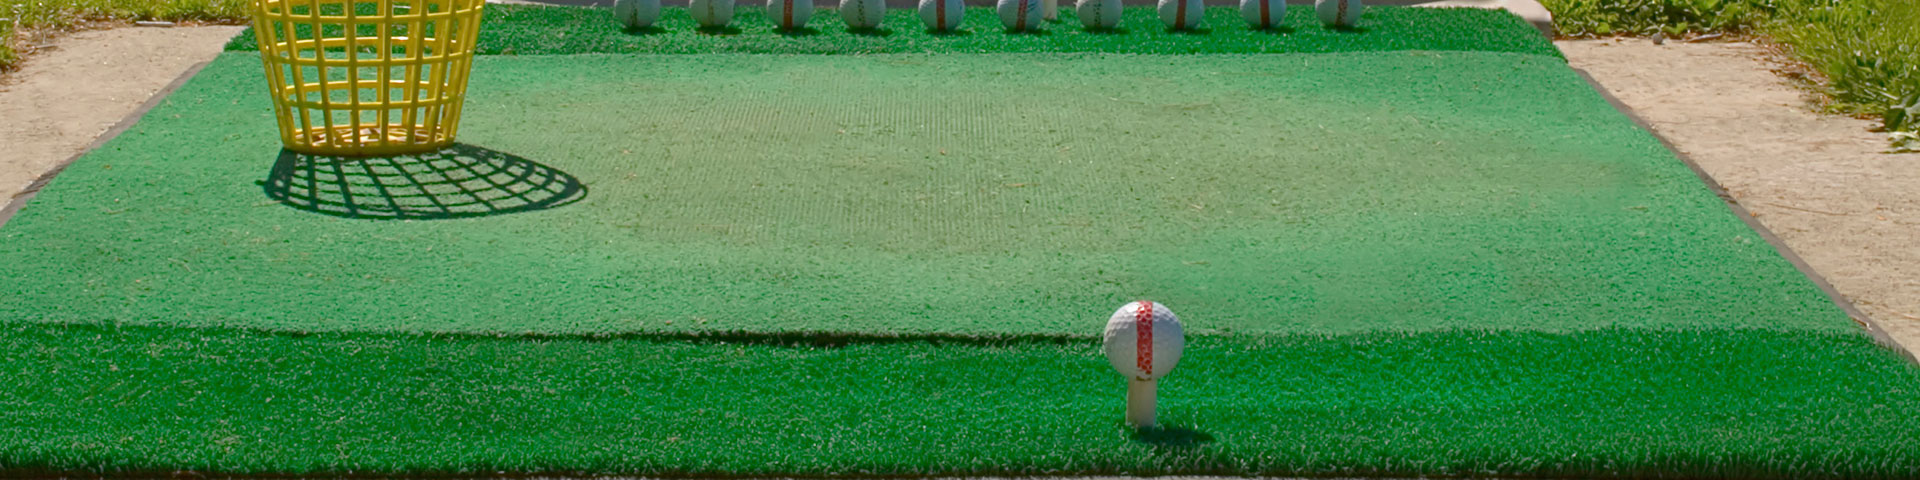 A golf ball sits on a tee at a driving range